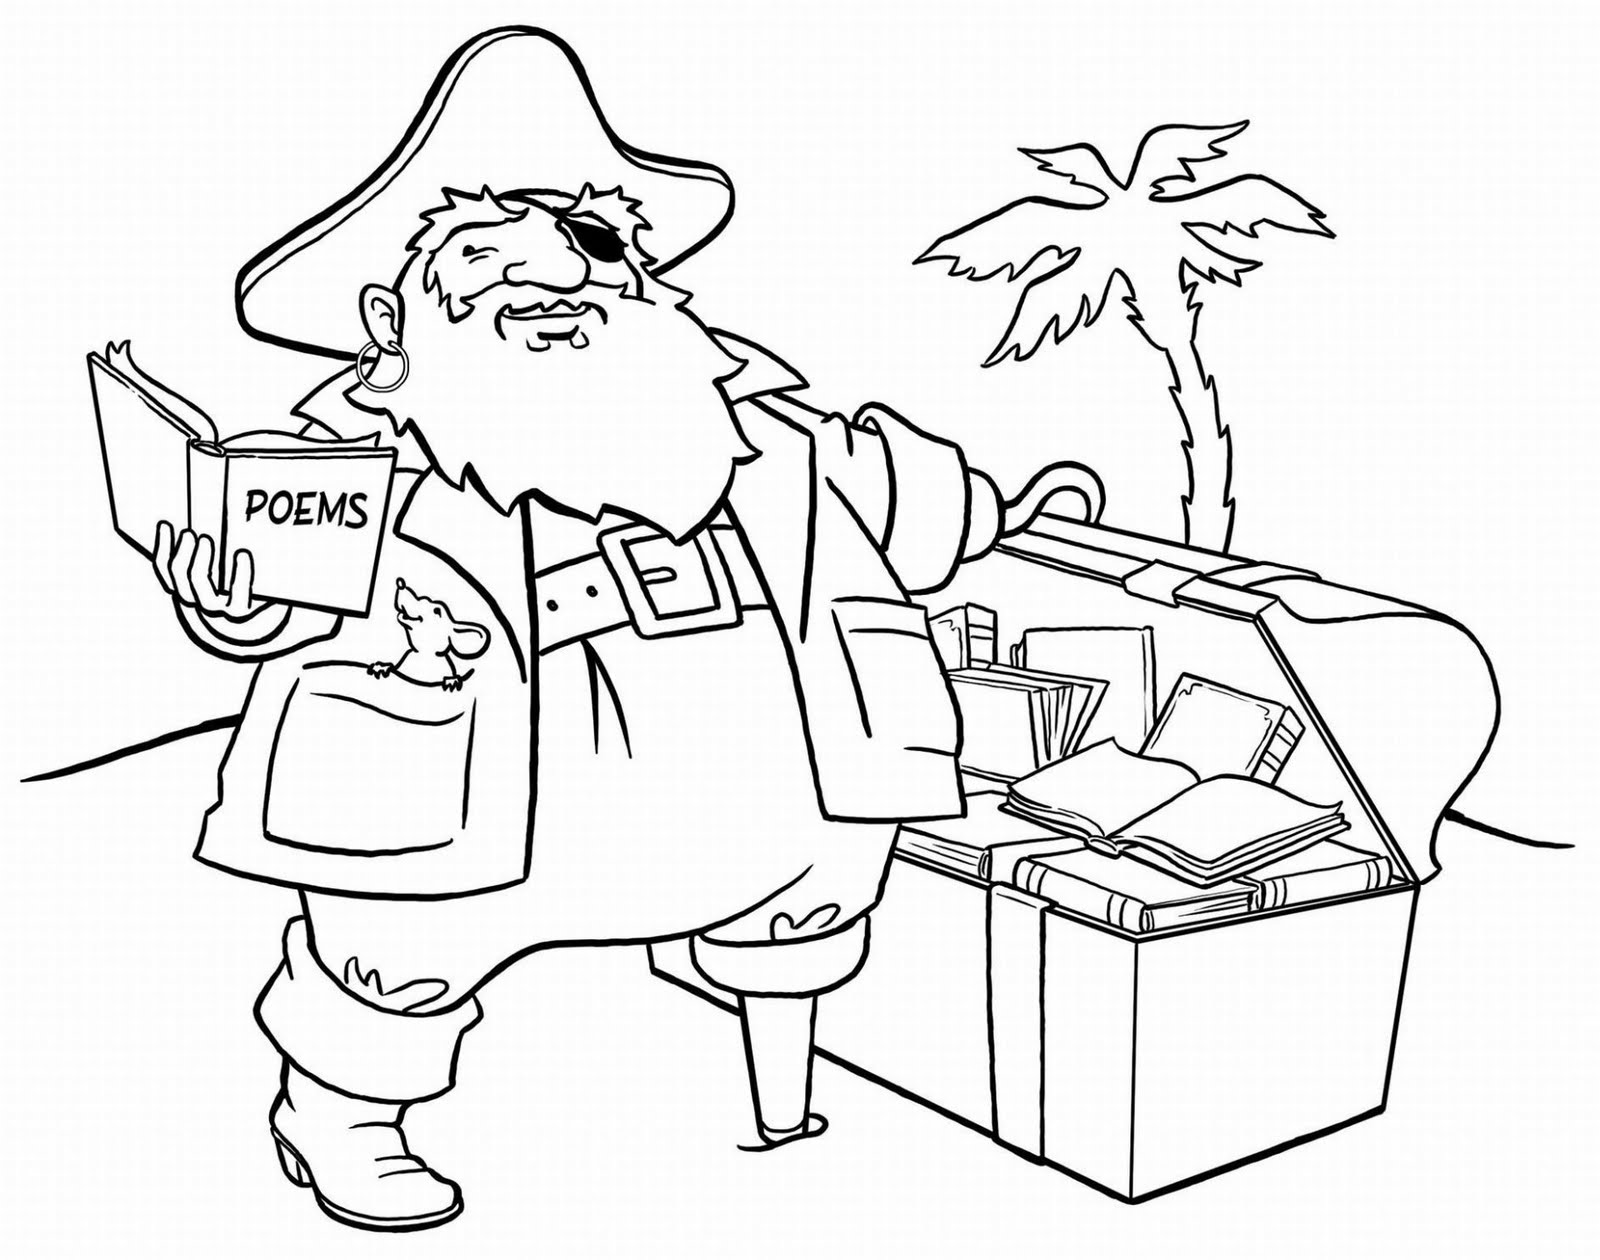 Pirate colouring pages to print - Pirate Coloring Sheets